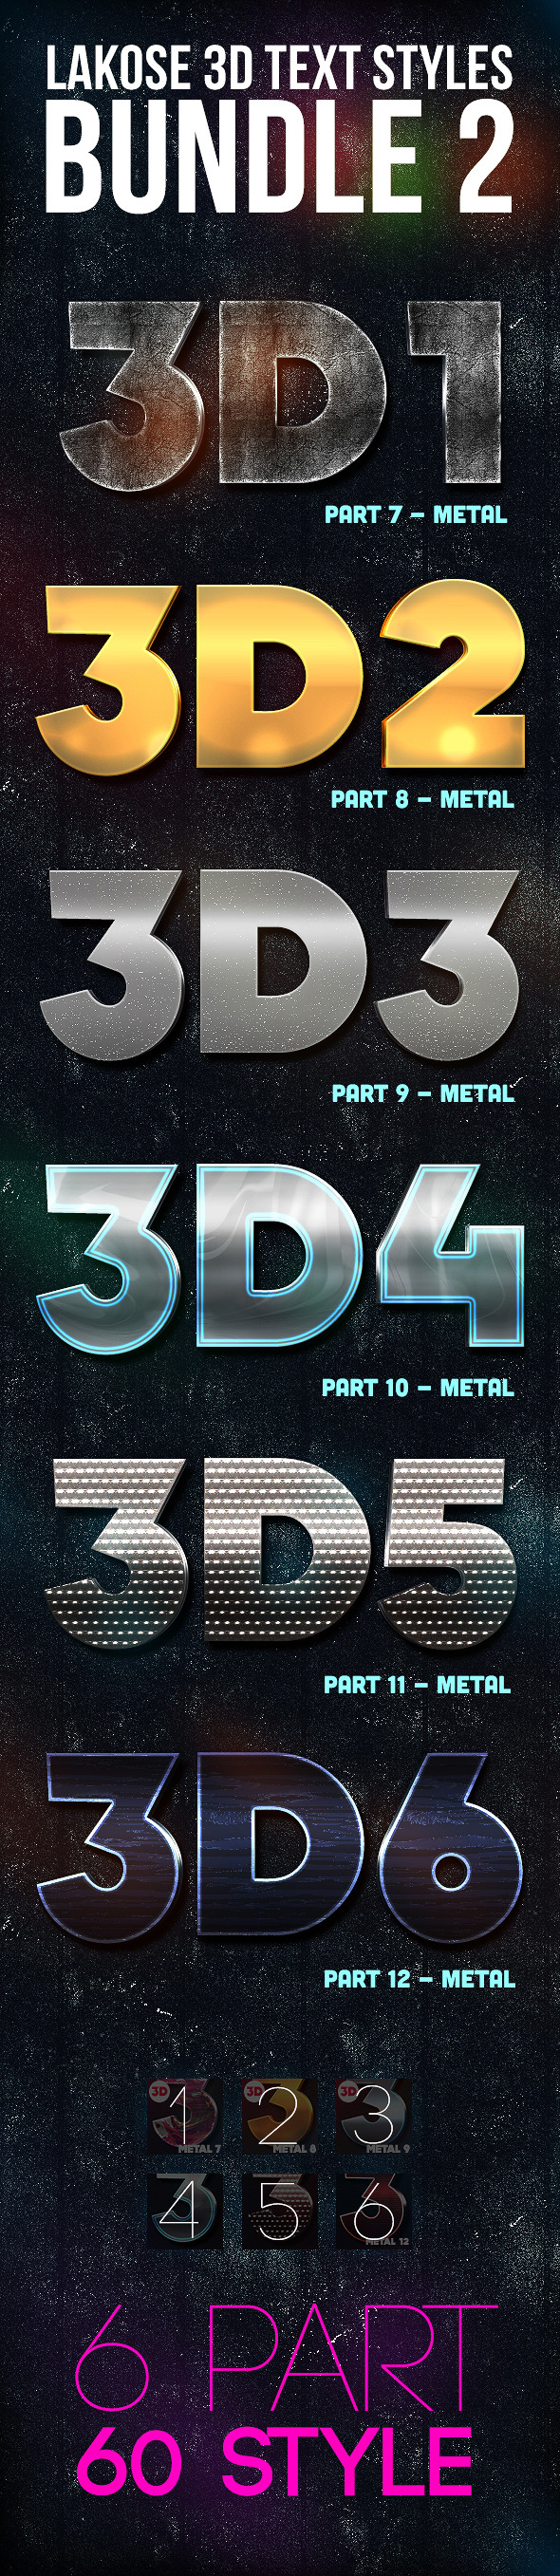 Lakose 3D Text Styles Bundle 2 - Text Effects Styles